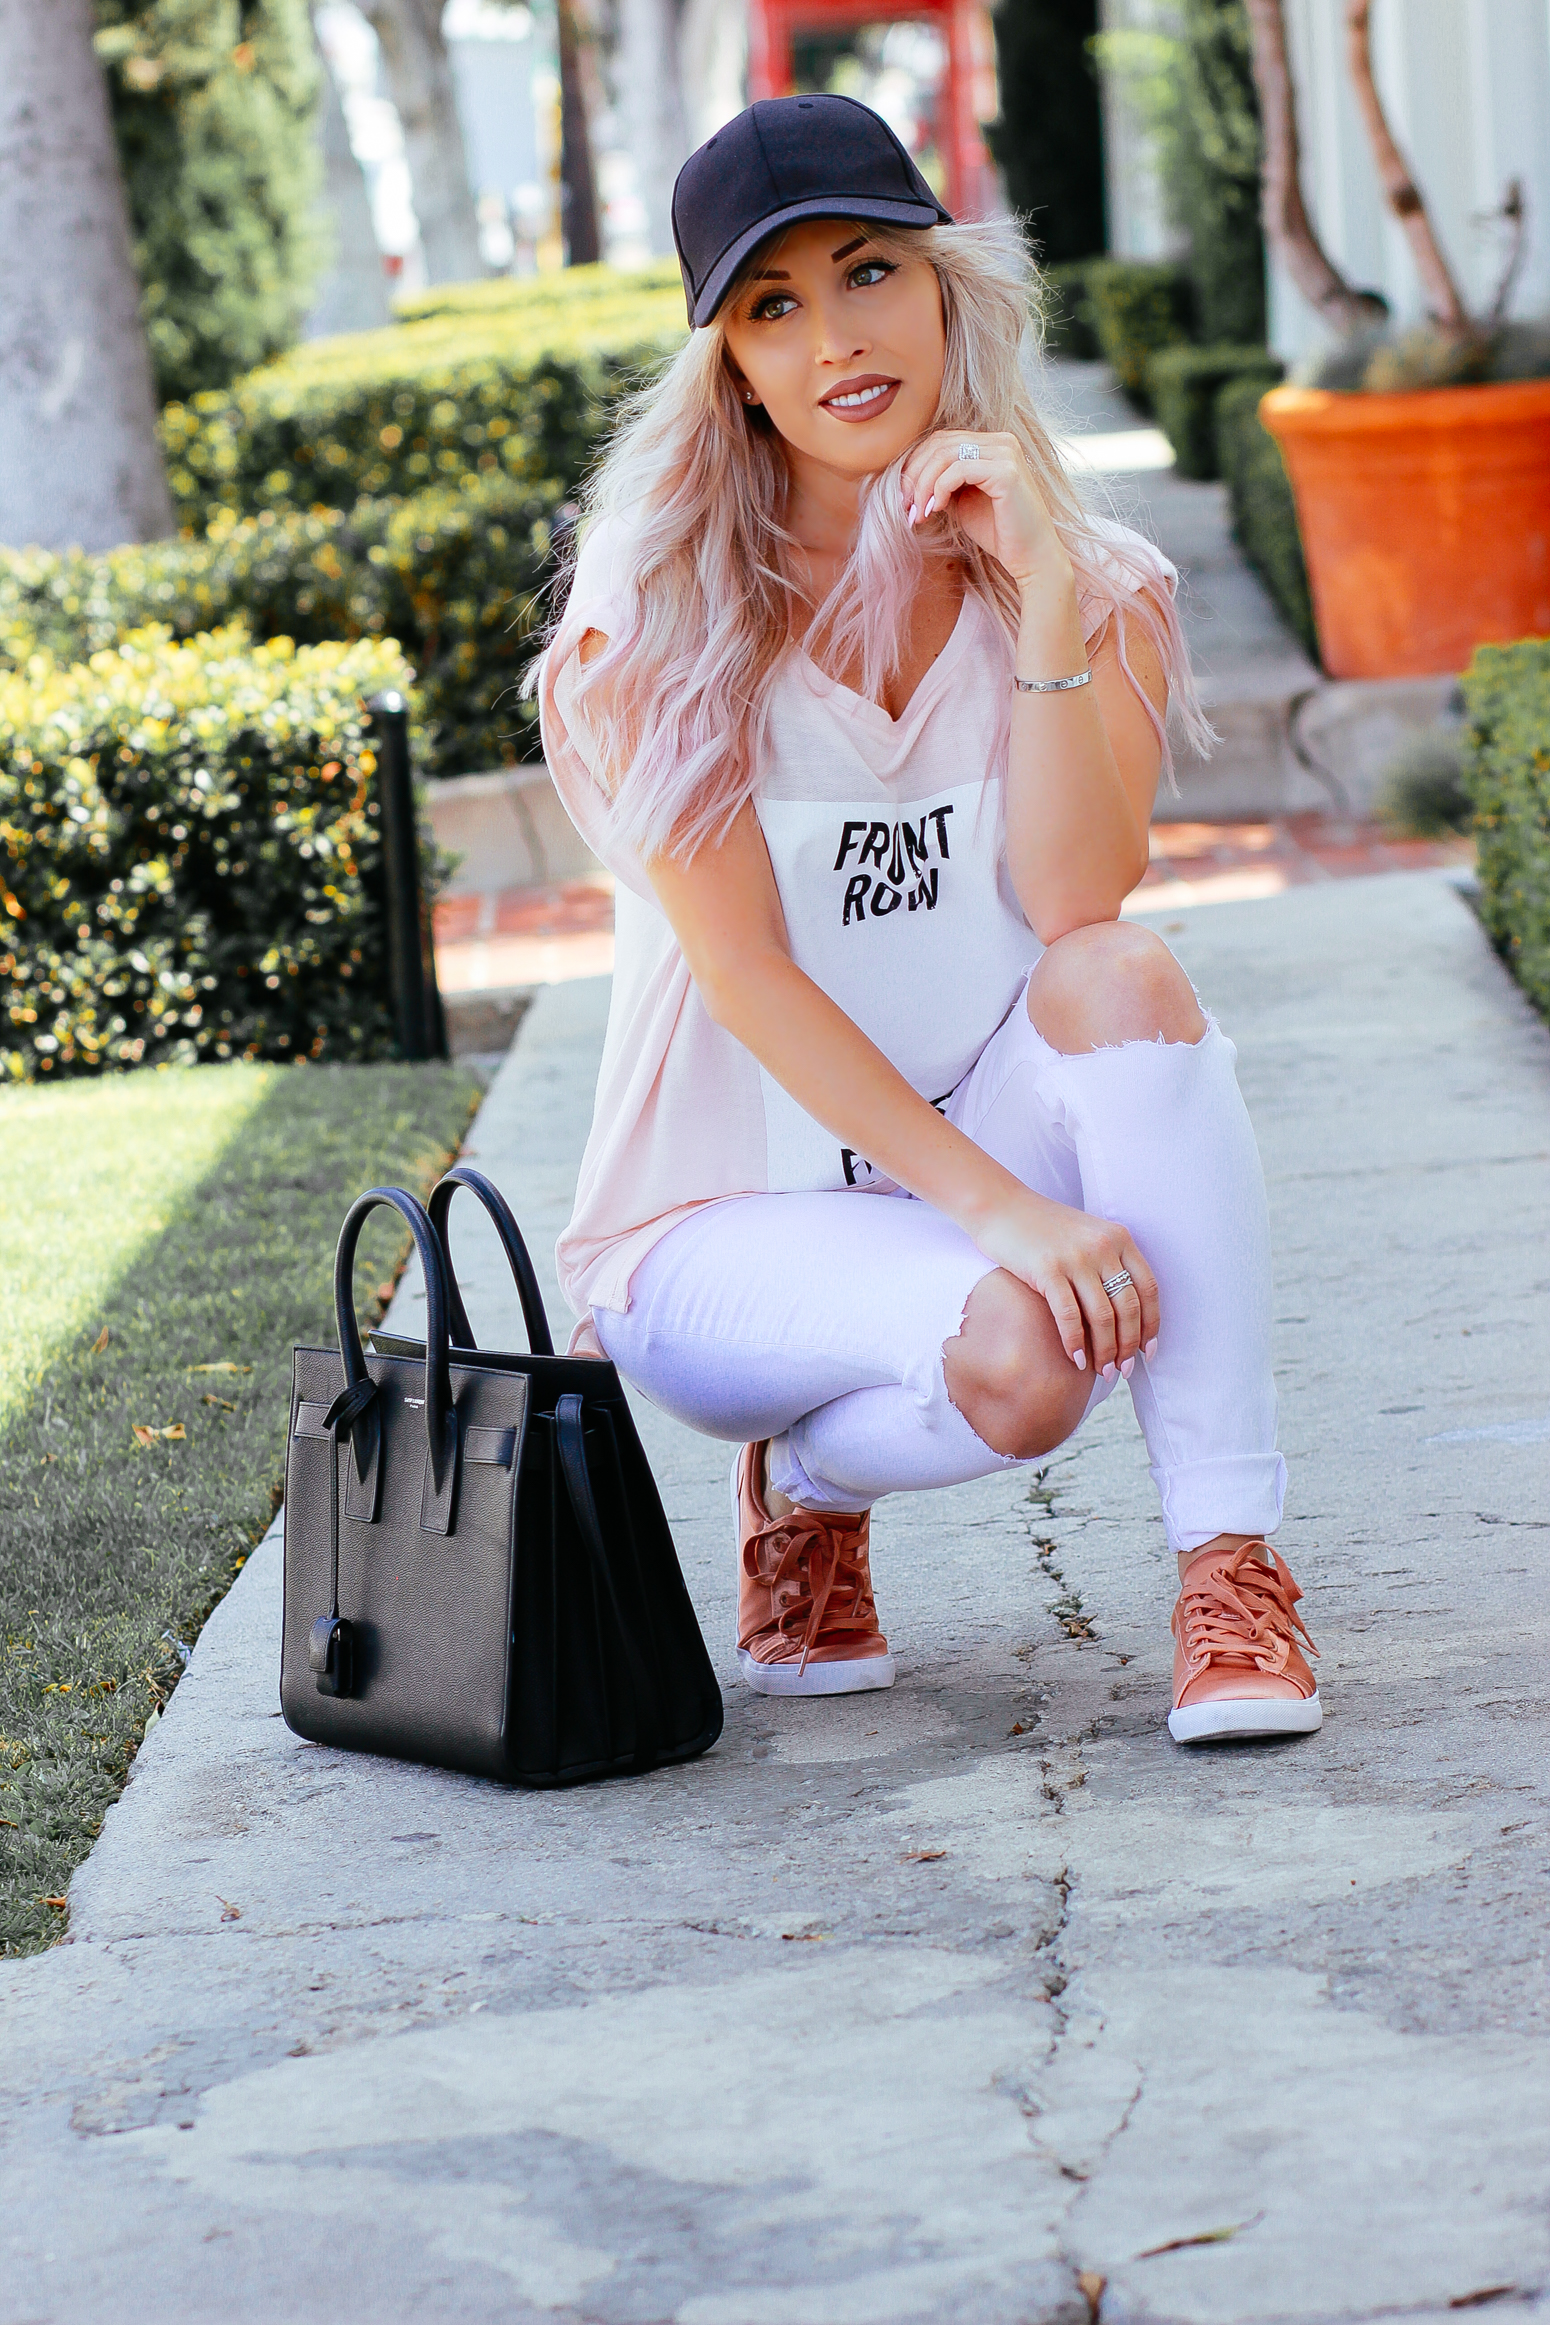 Blondie in the City | Front Row Fashion Blogger | Pastel Hair | Pink & White Outfit | YSL Bag